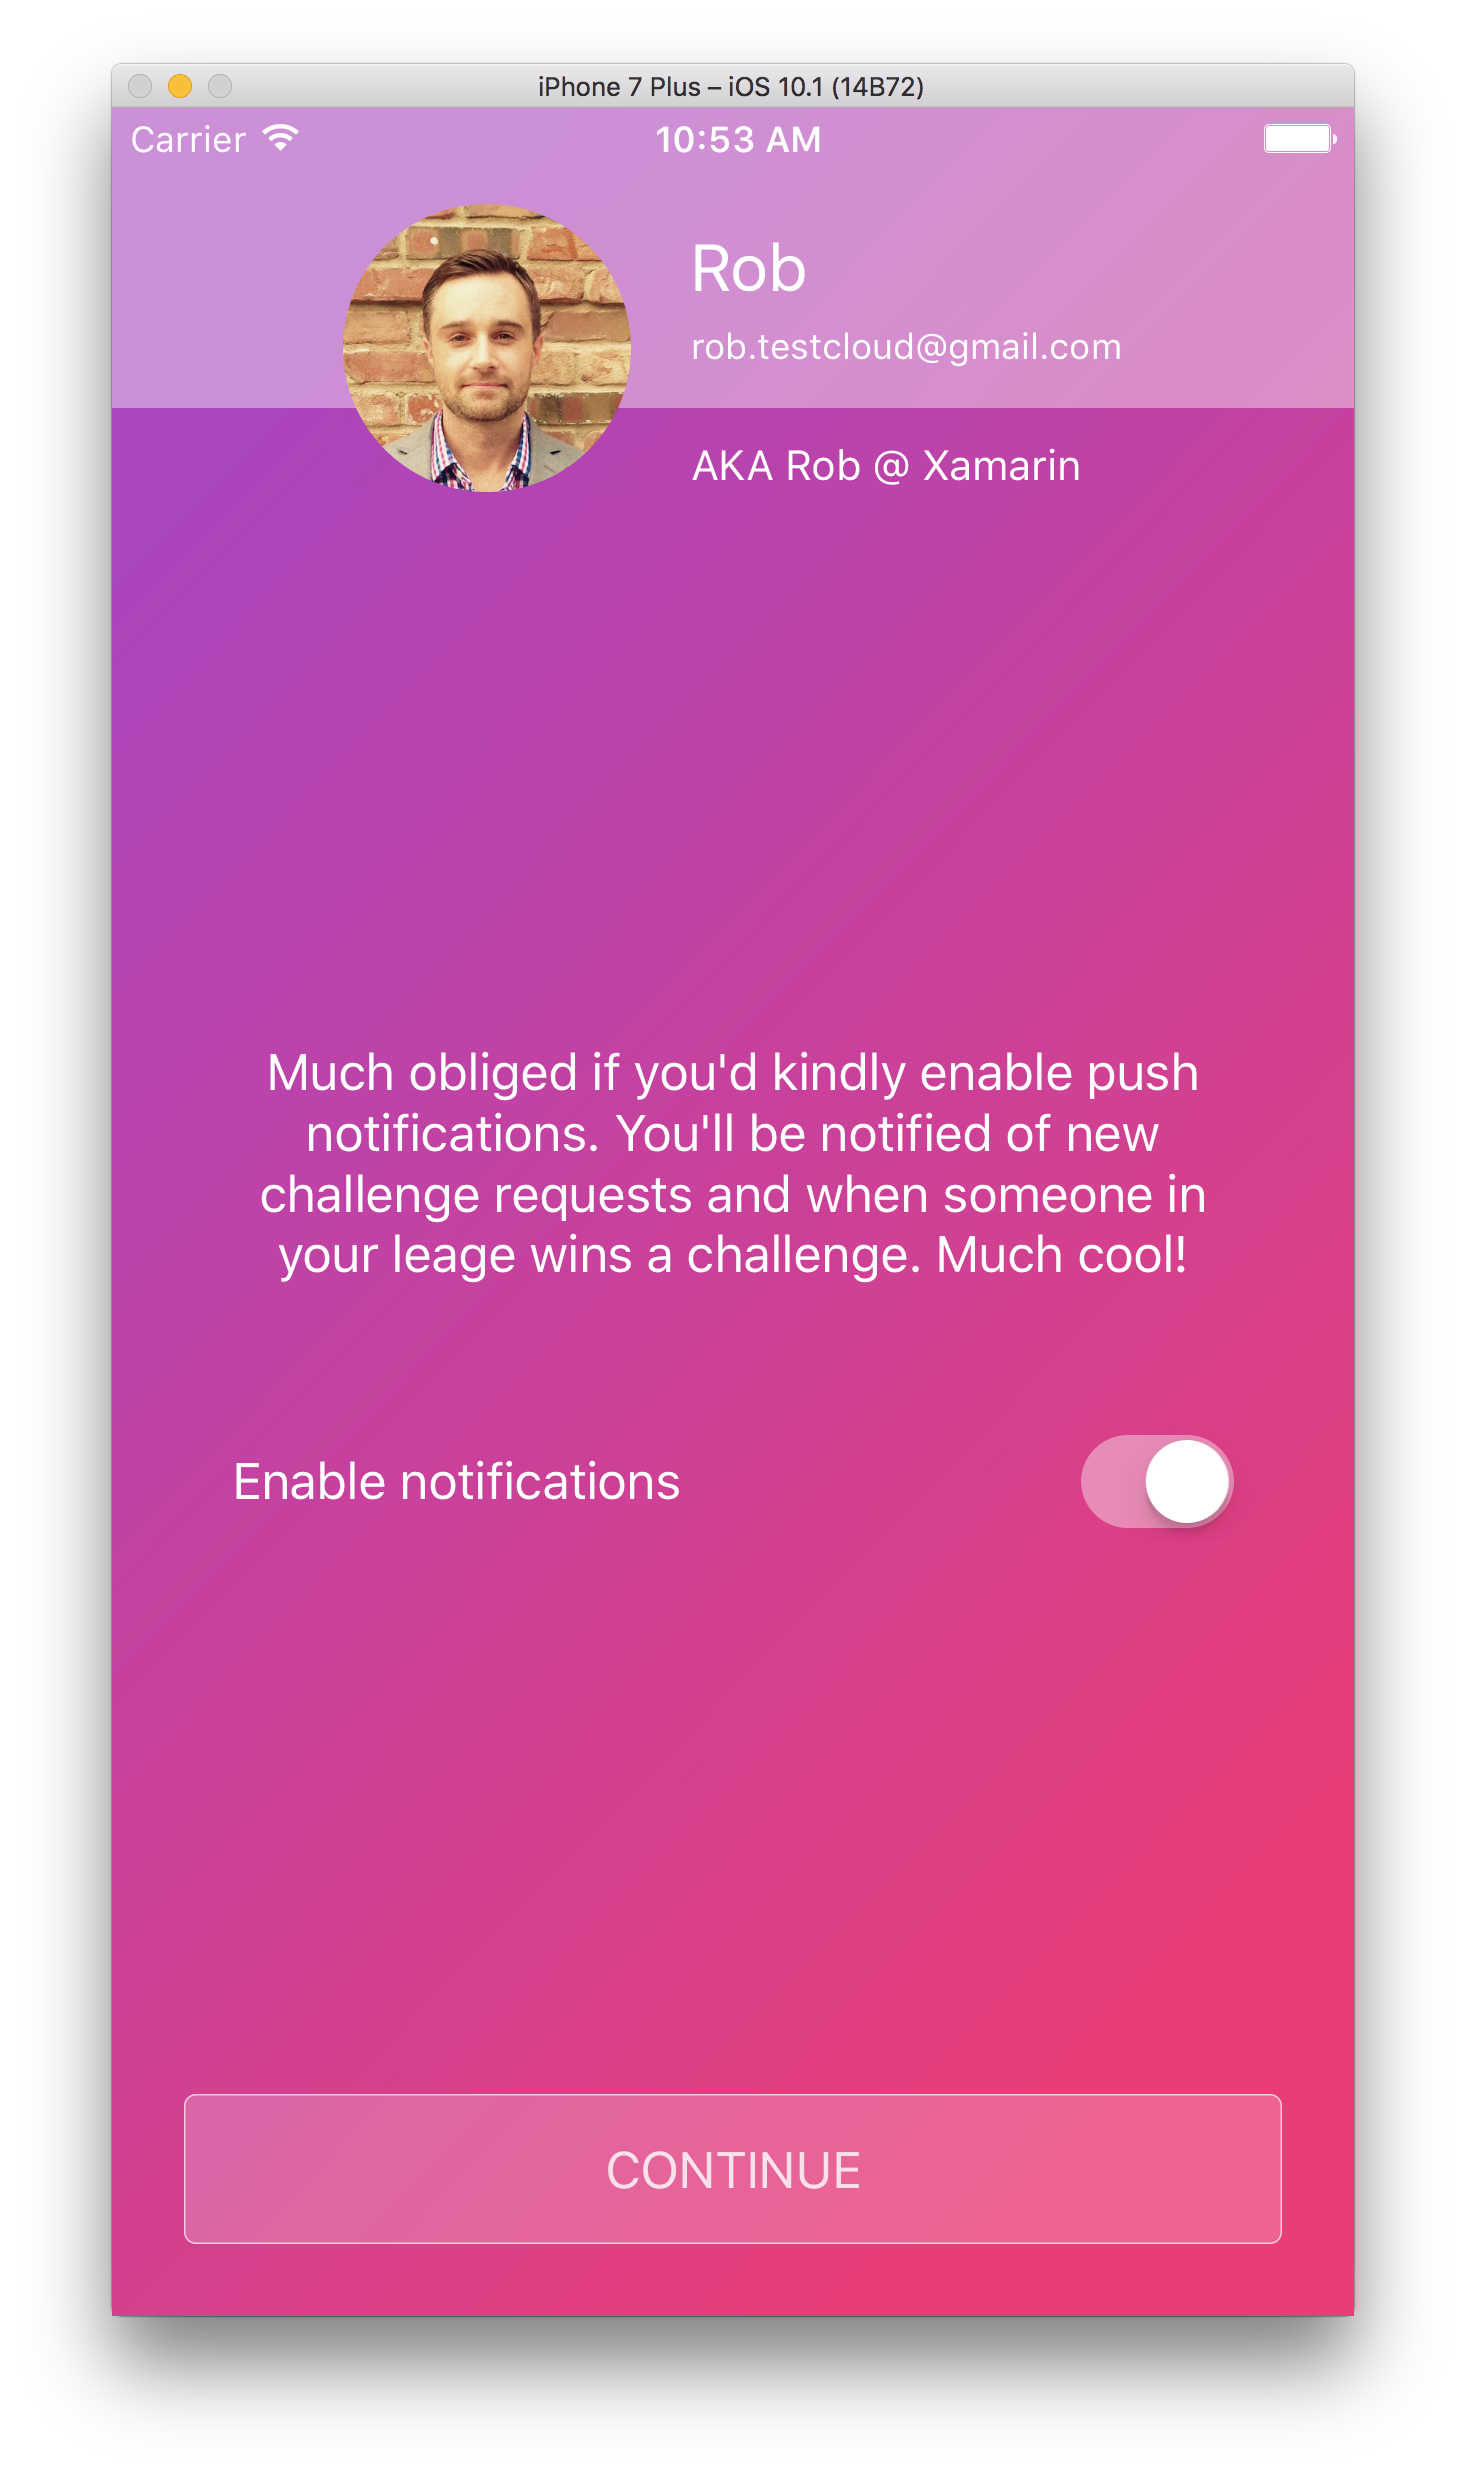 Optionally enable push notifications